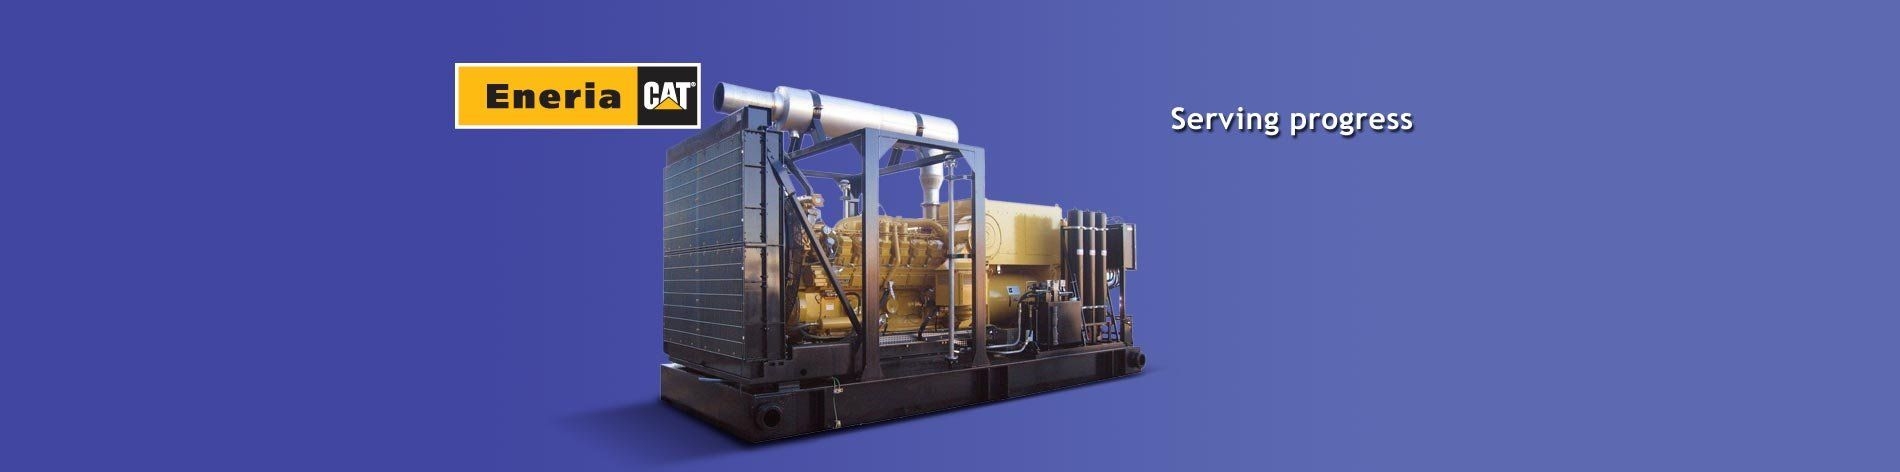 Our Caterpillar engines are suited to the oil and oil-services industries.